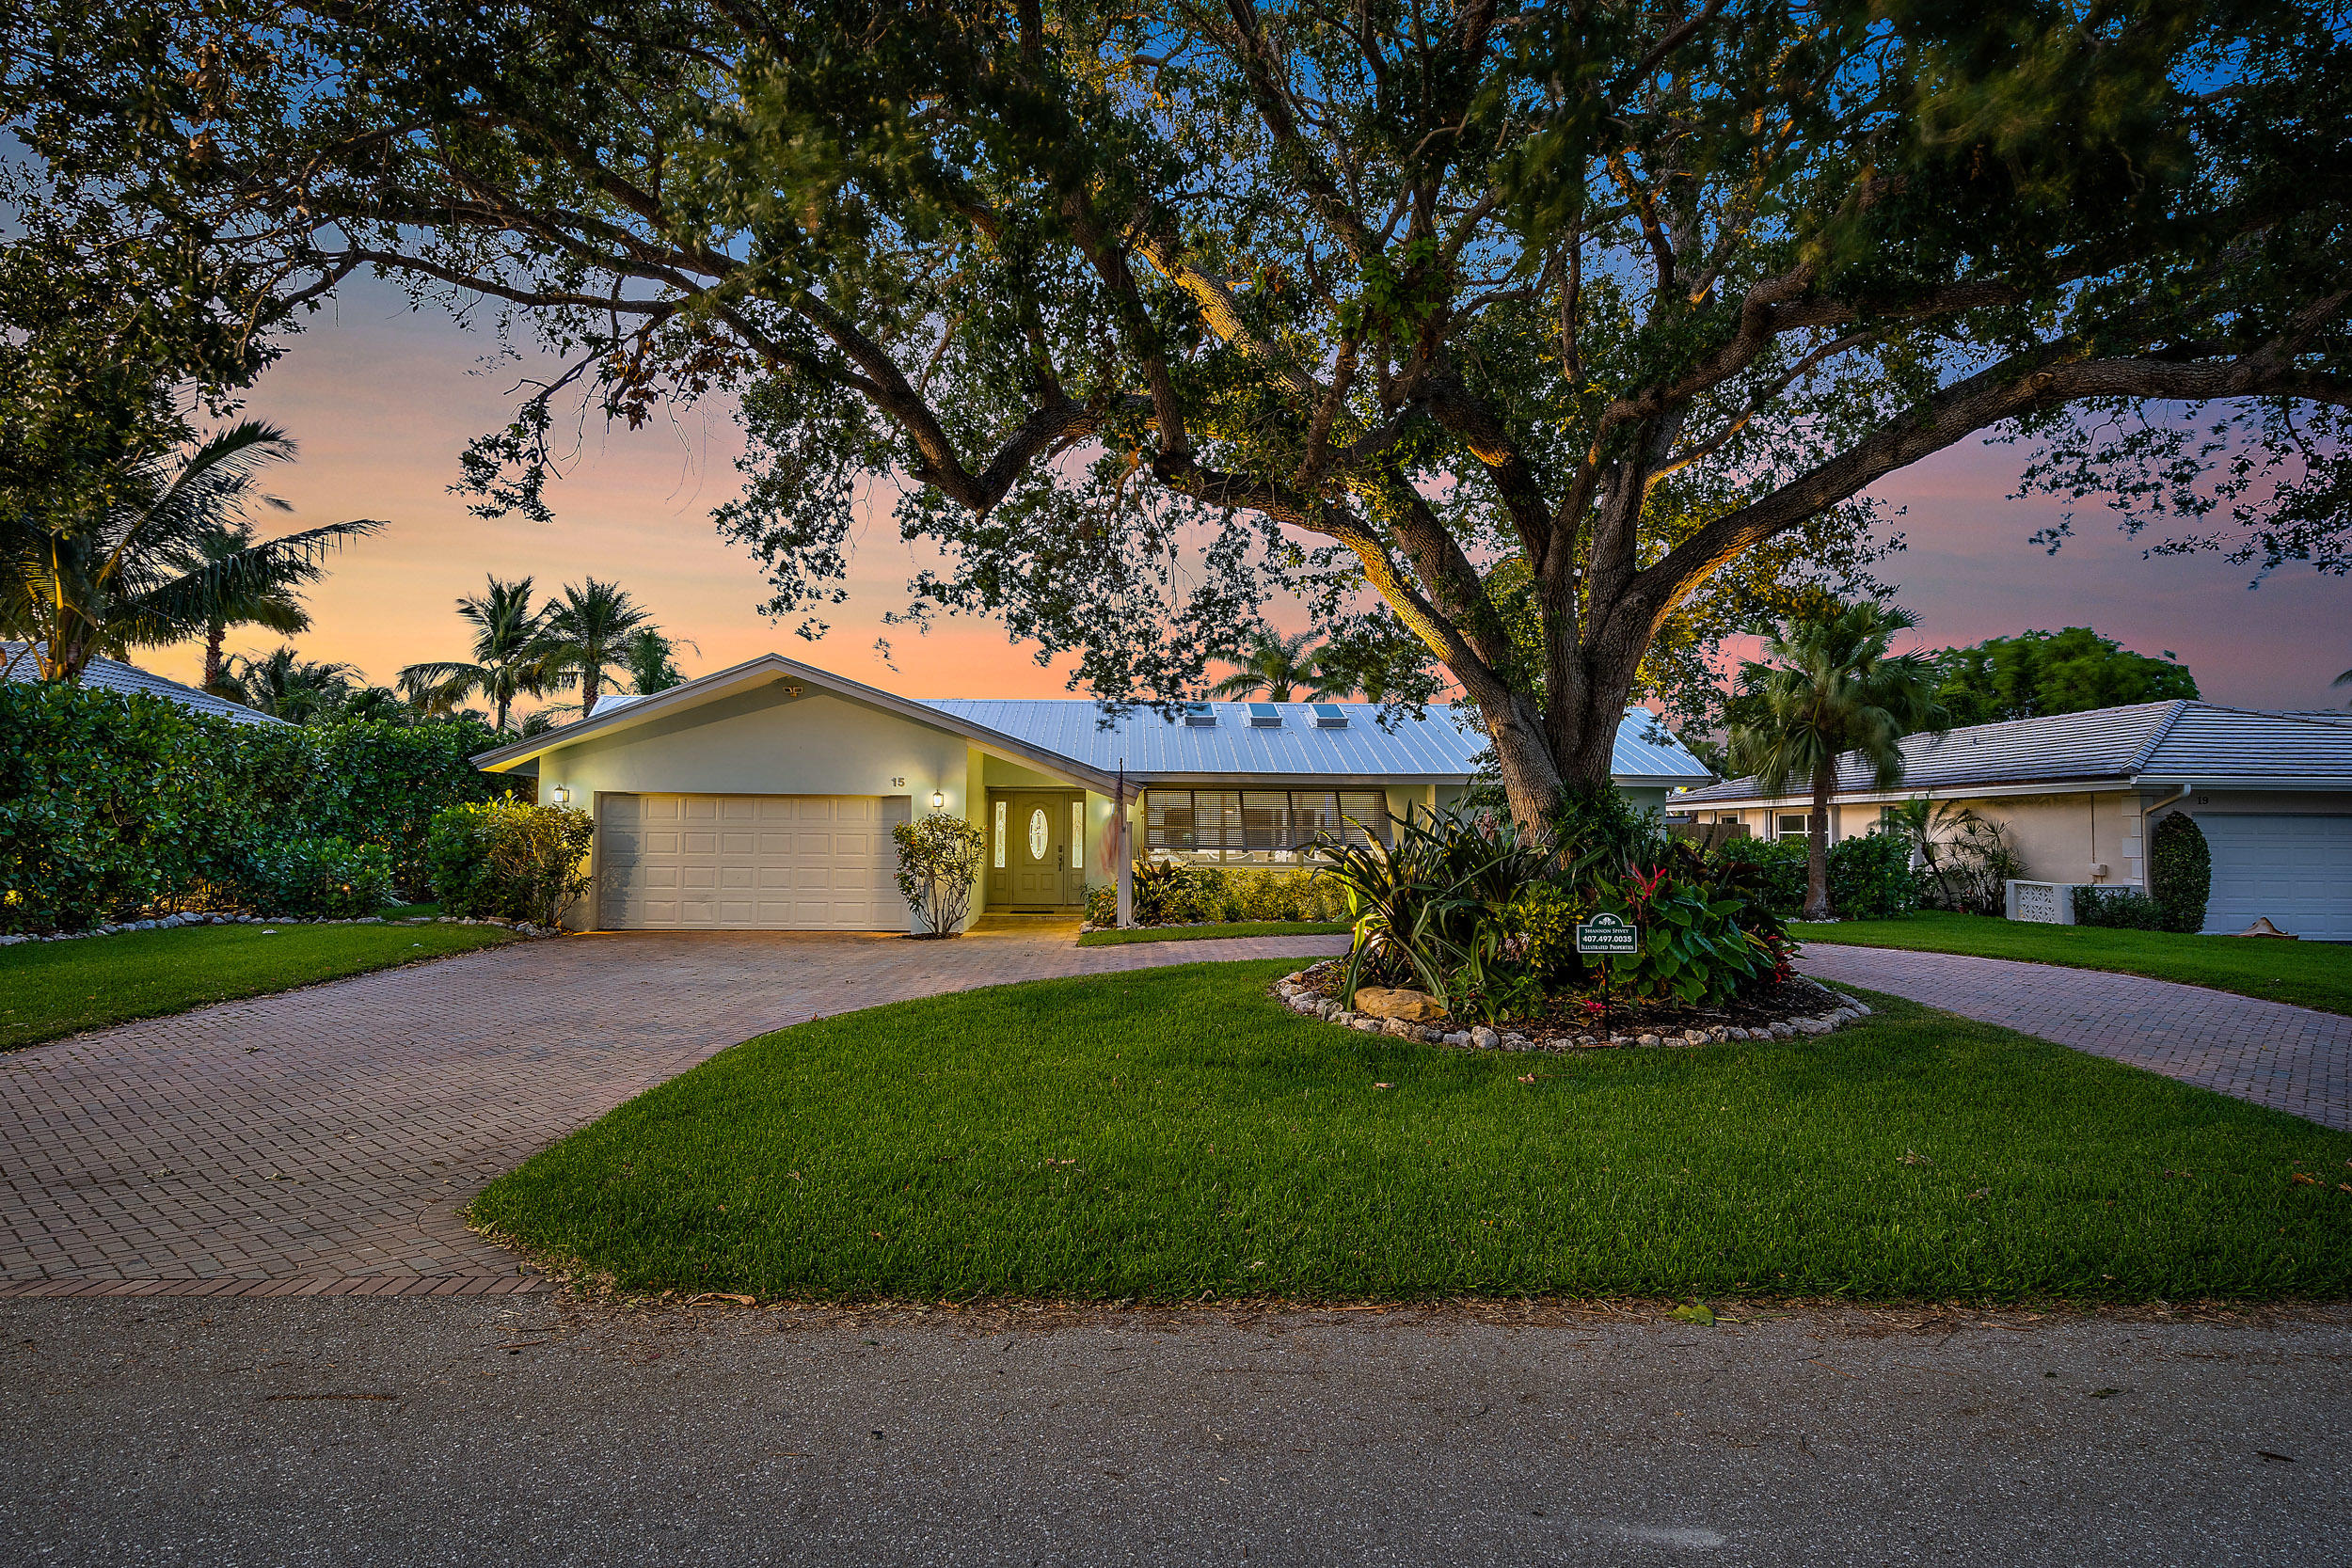 Home for sale in COUNTRY CLUB POINT PT OF GOV LTS 2 & 5 IN Tequesta Florida